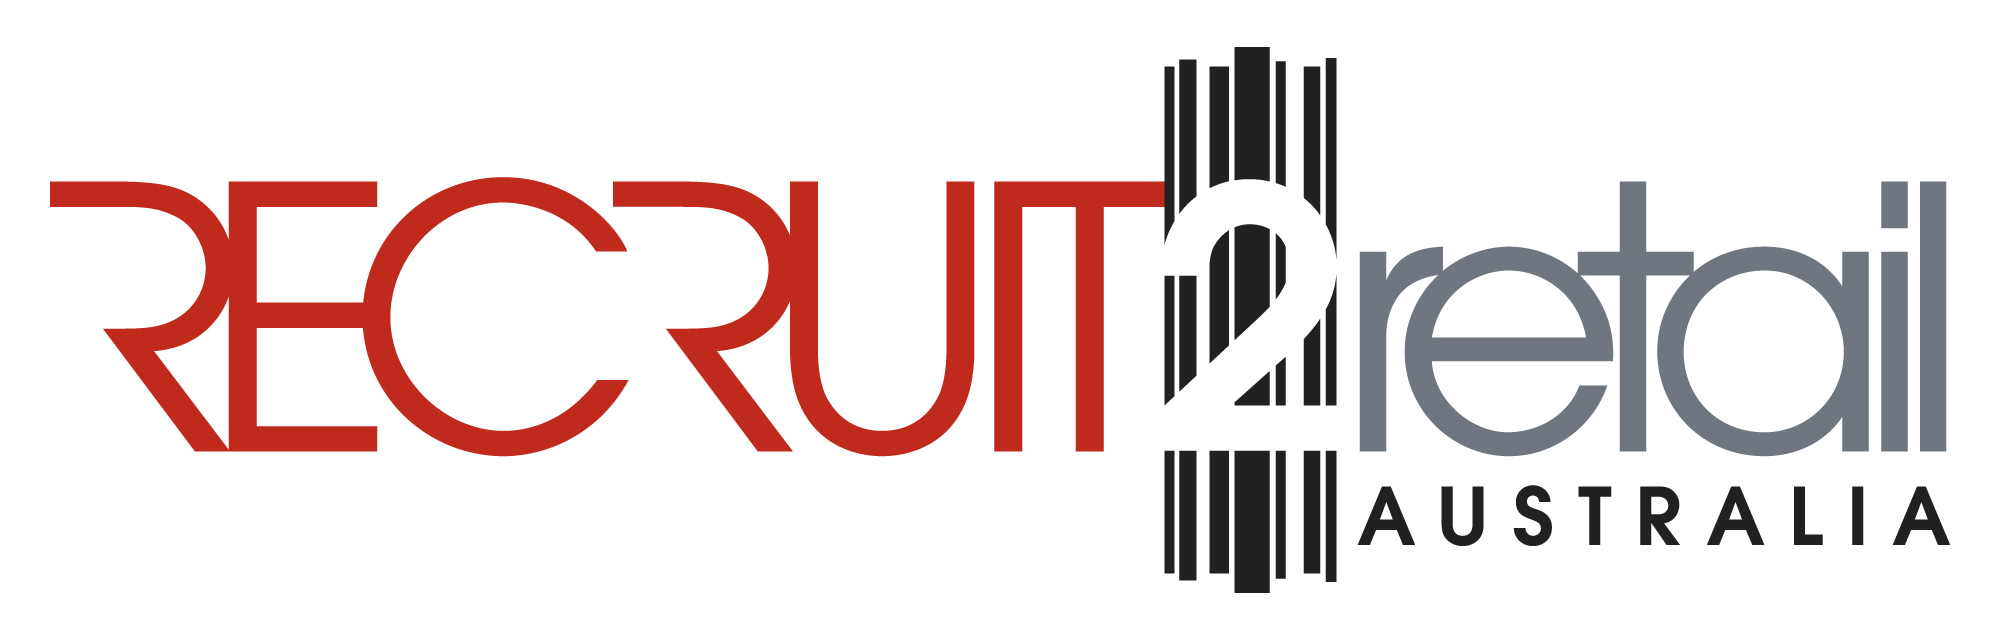 Logo of RECRUIT2retail AUSTRALIA